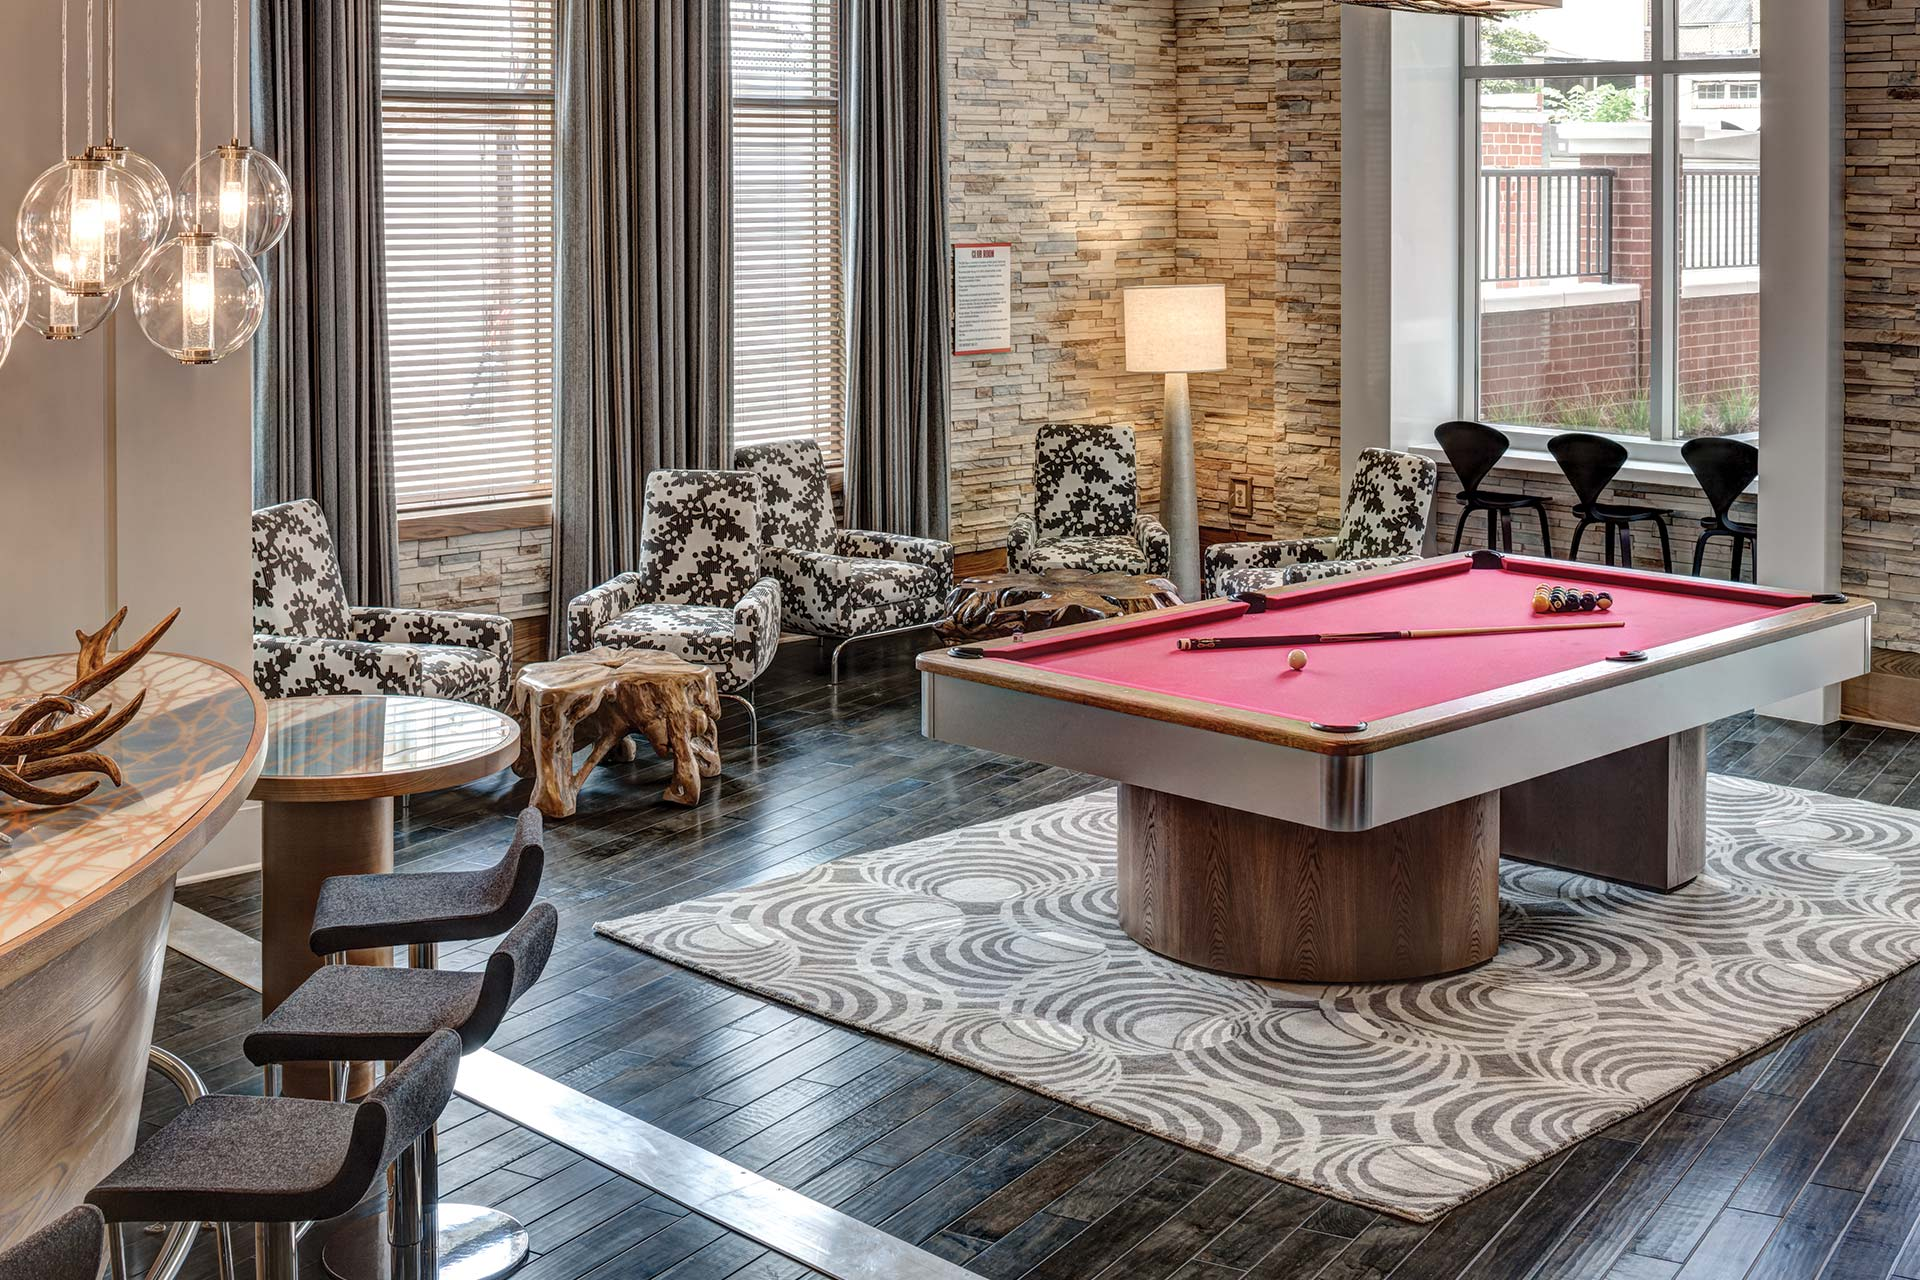 jefferson marketplace game room with billiards, bar seating, social seating and modern lighting - jefferson apartment group